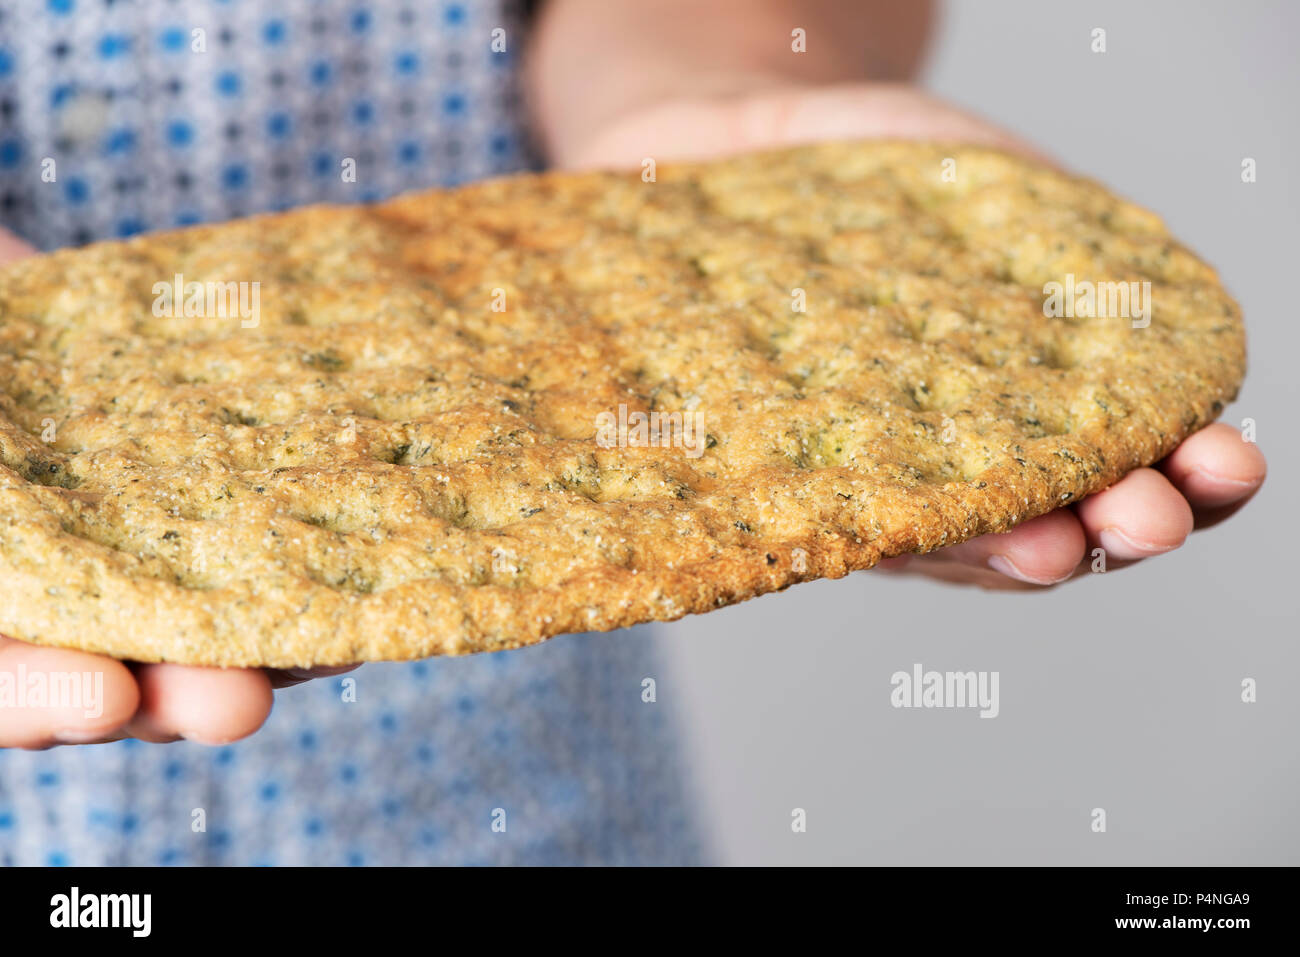 closeup of a caucasian man with a kale flatbread in his hands - Stock Image